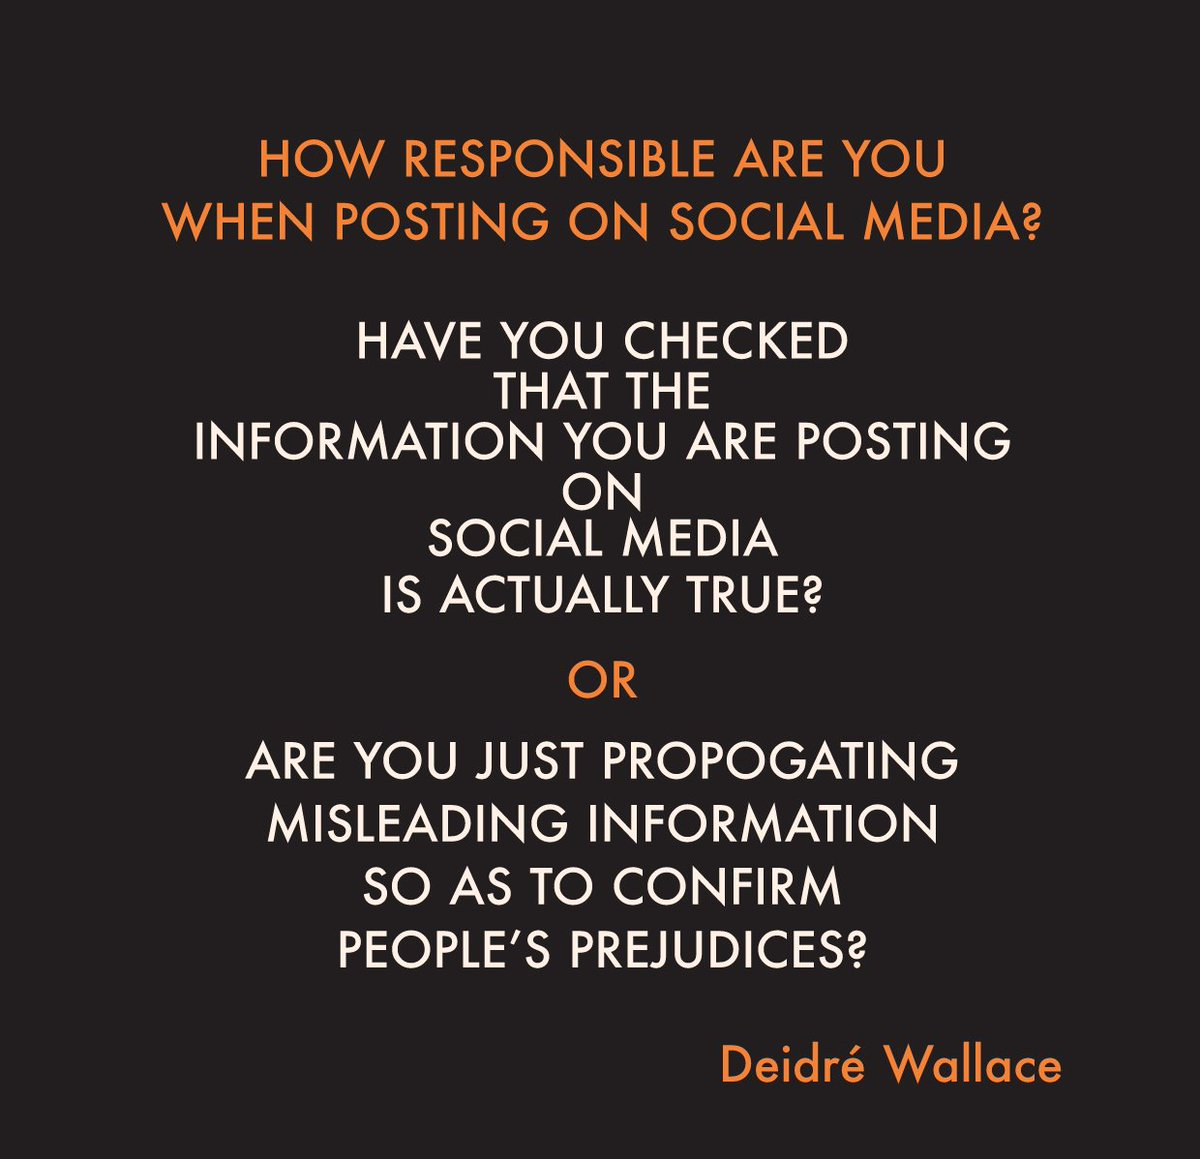 How #responsible are you when posting on #socialmedia? https://t.co/Mb...